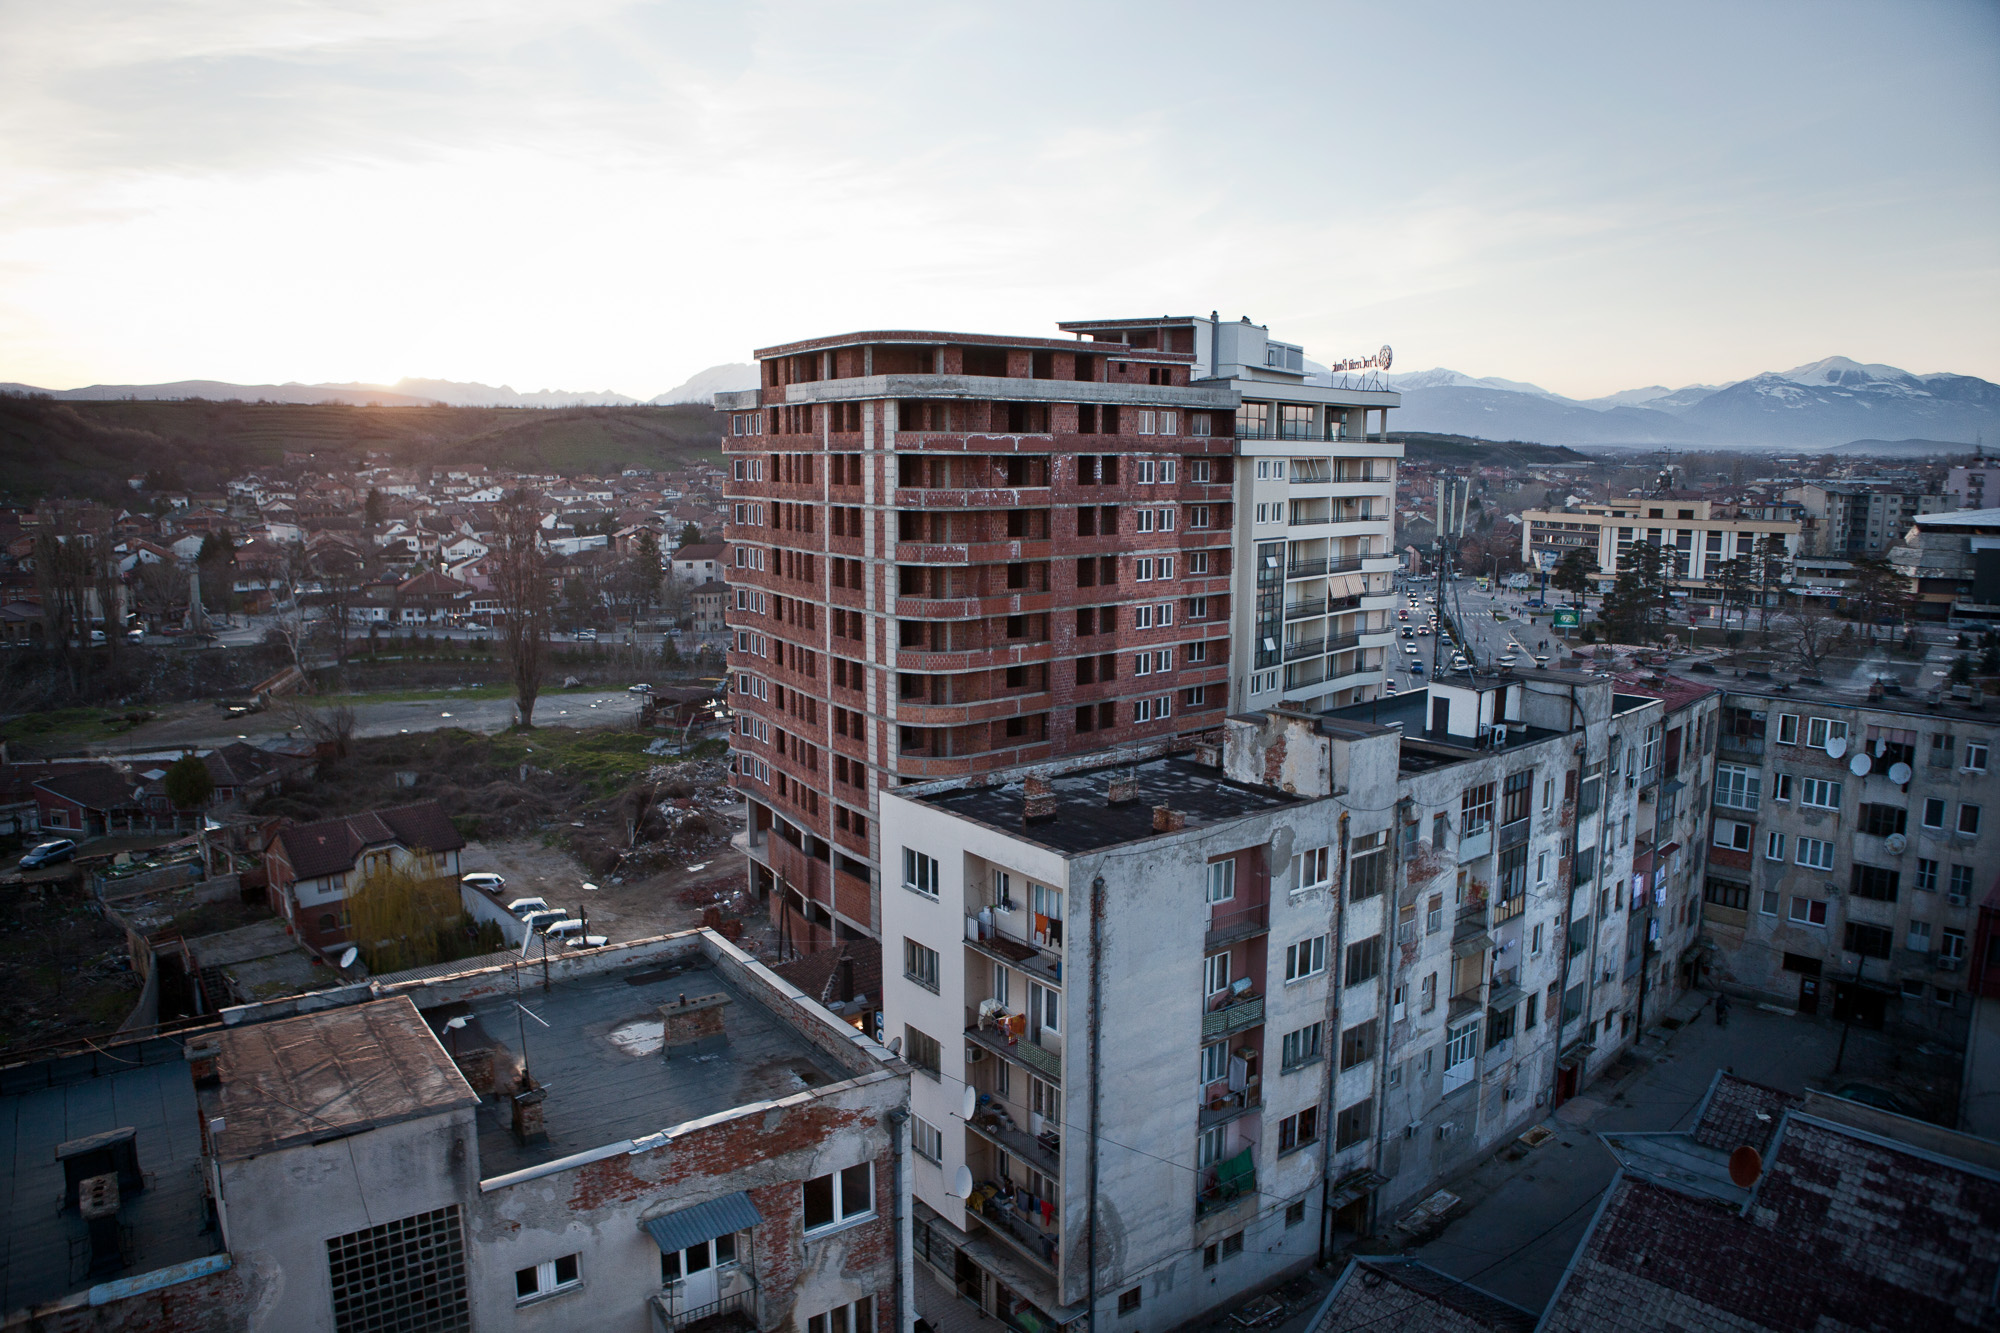 An uncompleted apartment block dominates the skyline of Gjakova city.  Built breaching planning permission, it highlights the problems that the country has faced in its recent past with corruption.   In order for Kosovo to be accepted as an EU member state, it is required to have certain levels of, infrastructure, employment and minimal corruption. However many of these stipulations are unachievable without foreign investment, which in turn is challenging without being an EU member, creating a revolving door syndrome.